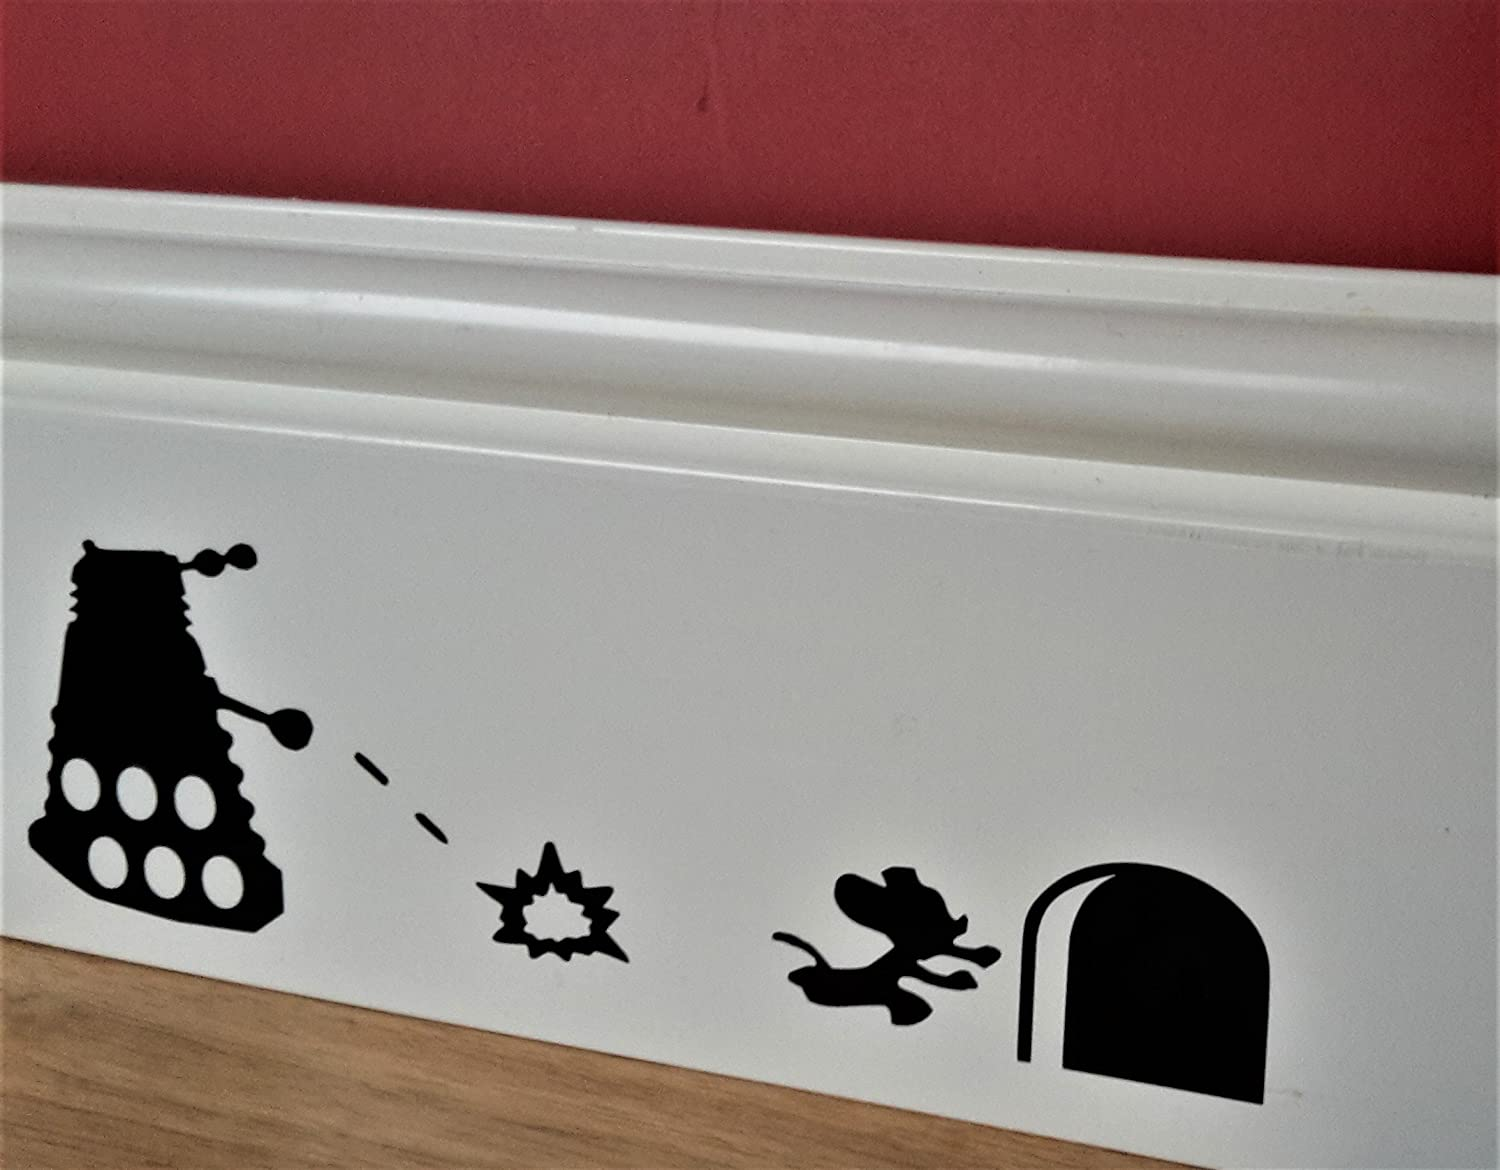 Doctor Who ' Mouse and Dalek ' Skirting Board Vinyl Decal Sticker Wall Art Vinyl Decal ..UKSELLINGSUPPLIERS®